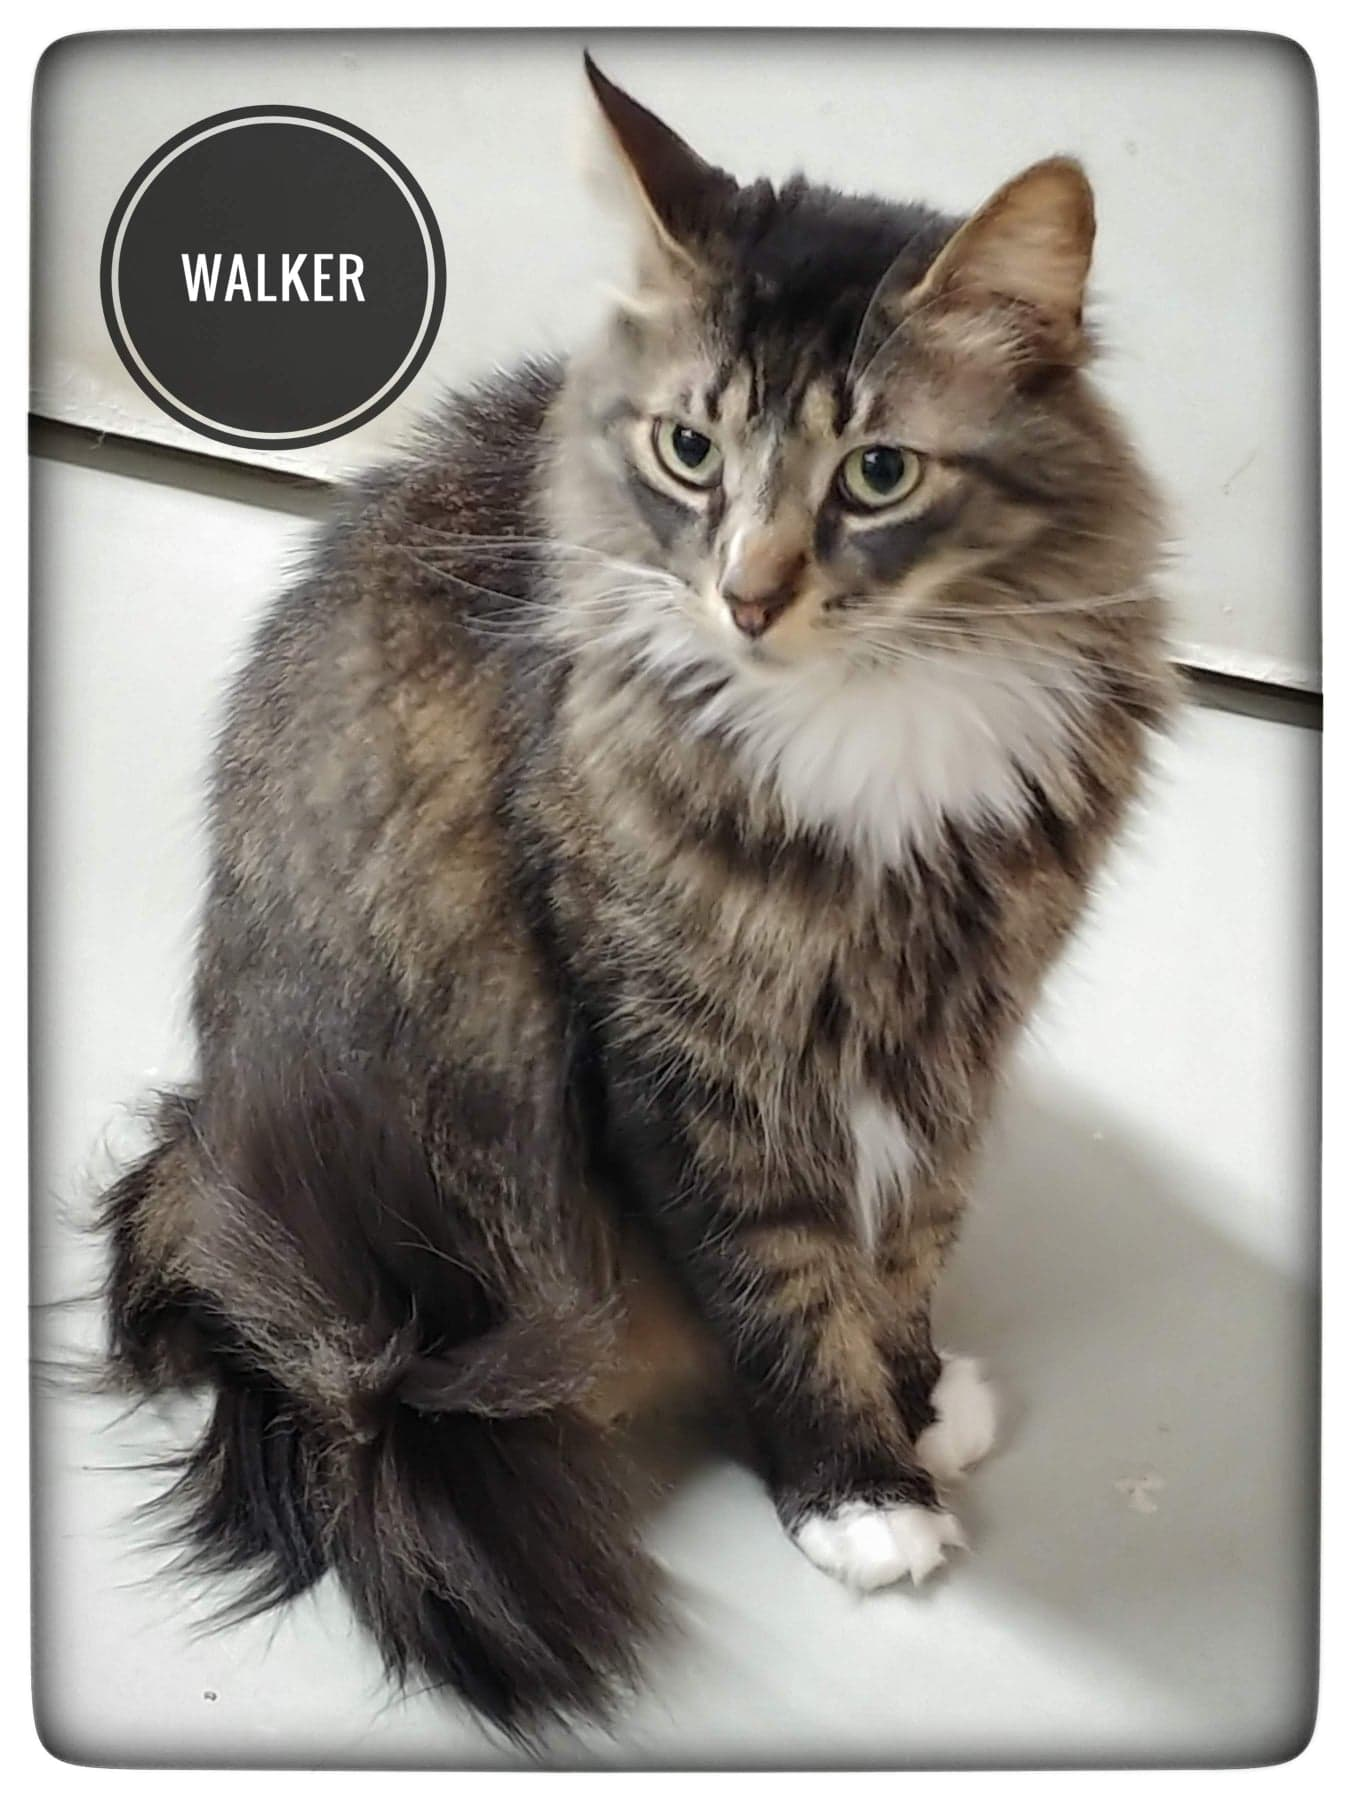 Let's find Walker a home!